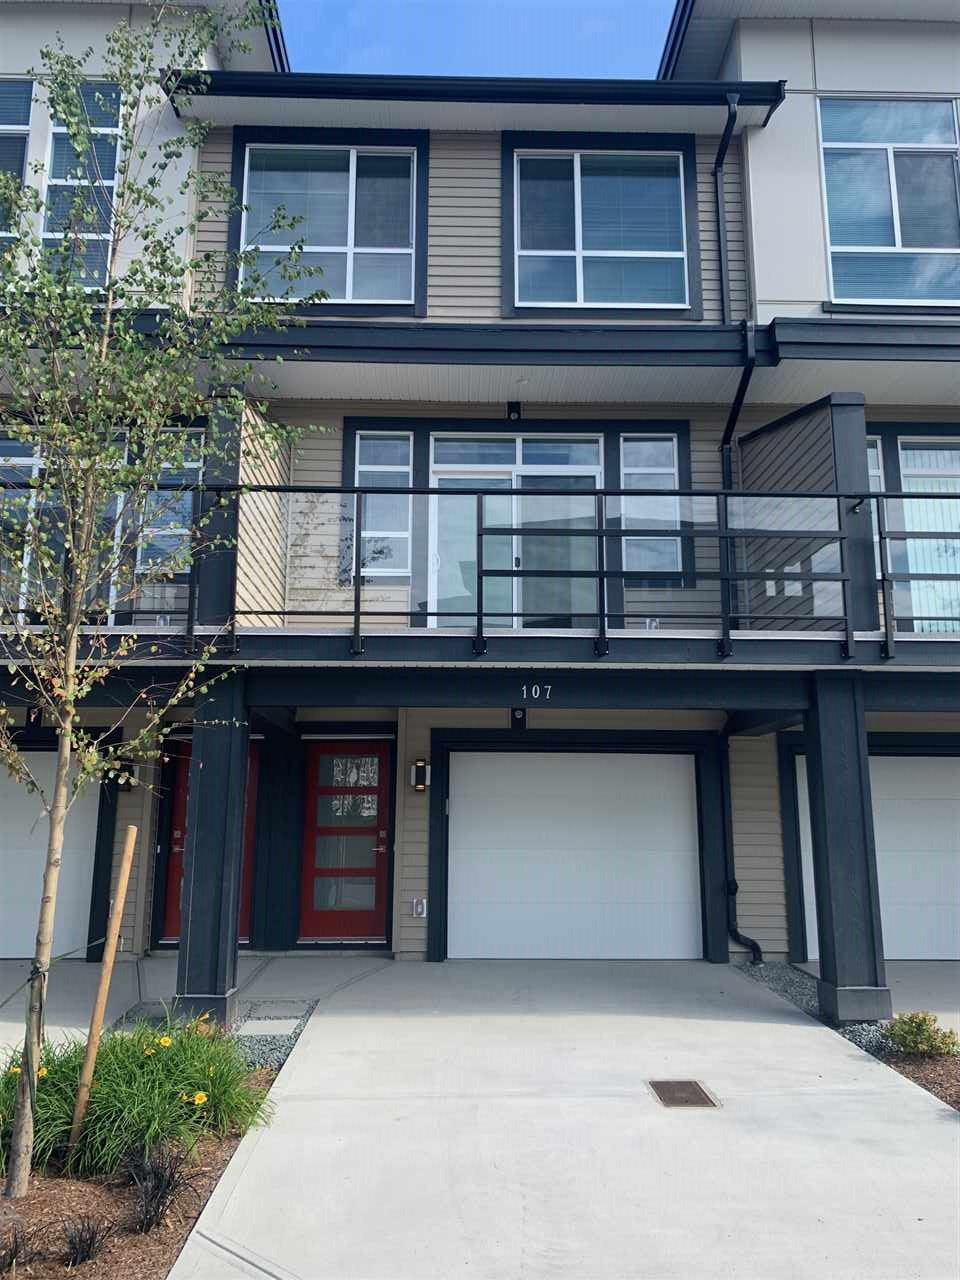 Main Photo: 107 8413 MIDTOWN Way in Chilliwack: Chilliwack W Young-Well Townhouse for sale : MLS®# R2397031